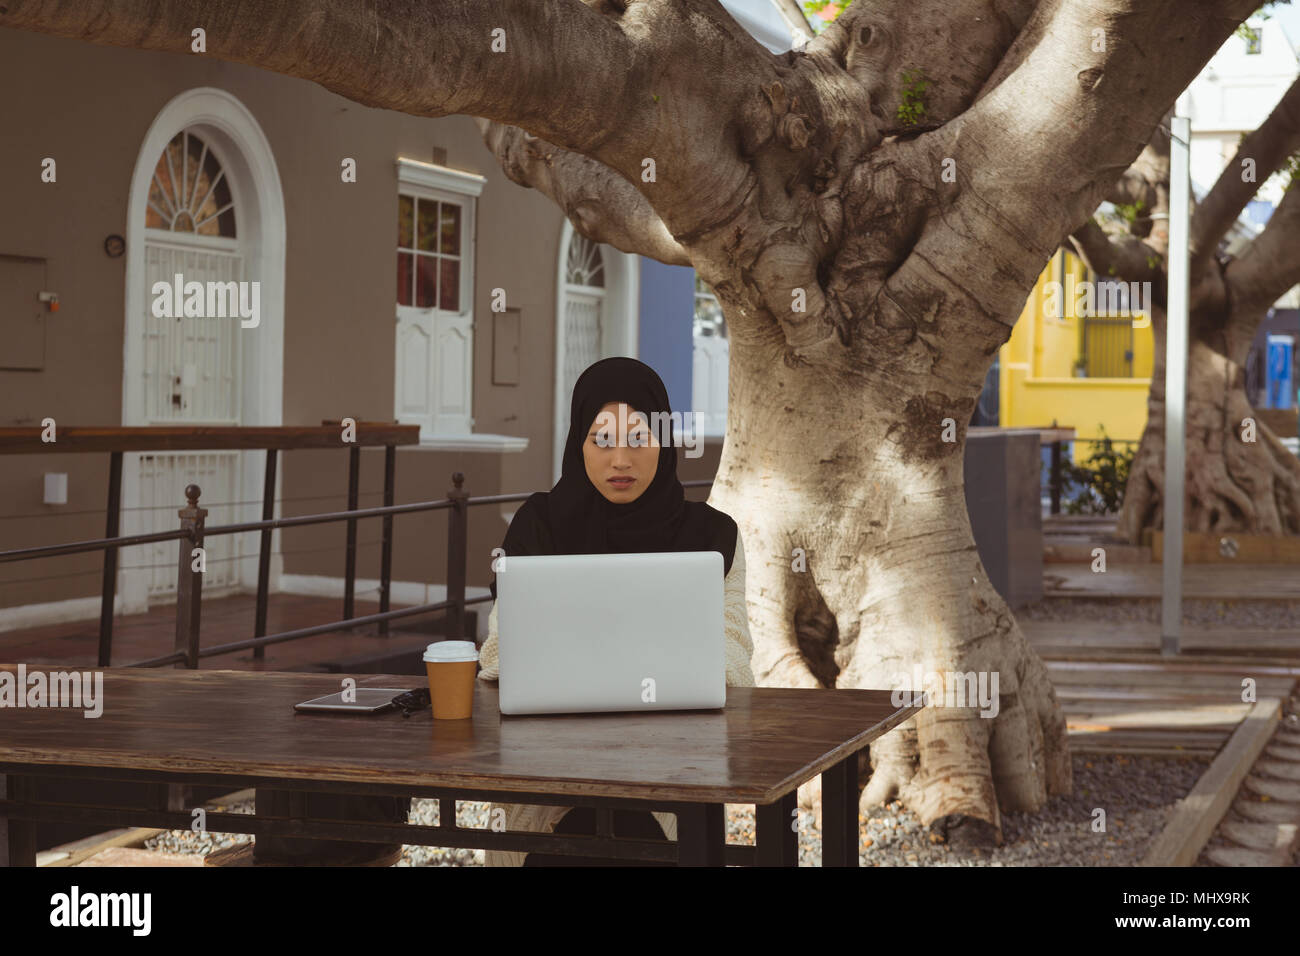 Urban hijab woman using laptop at pavement cafe - Stock Image